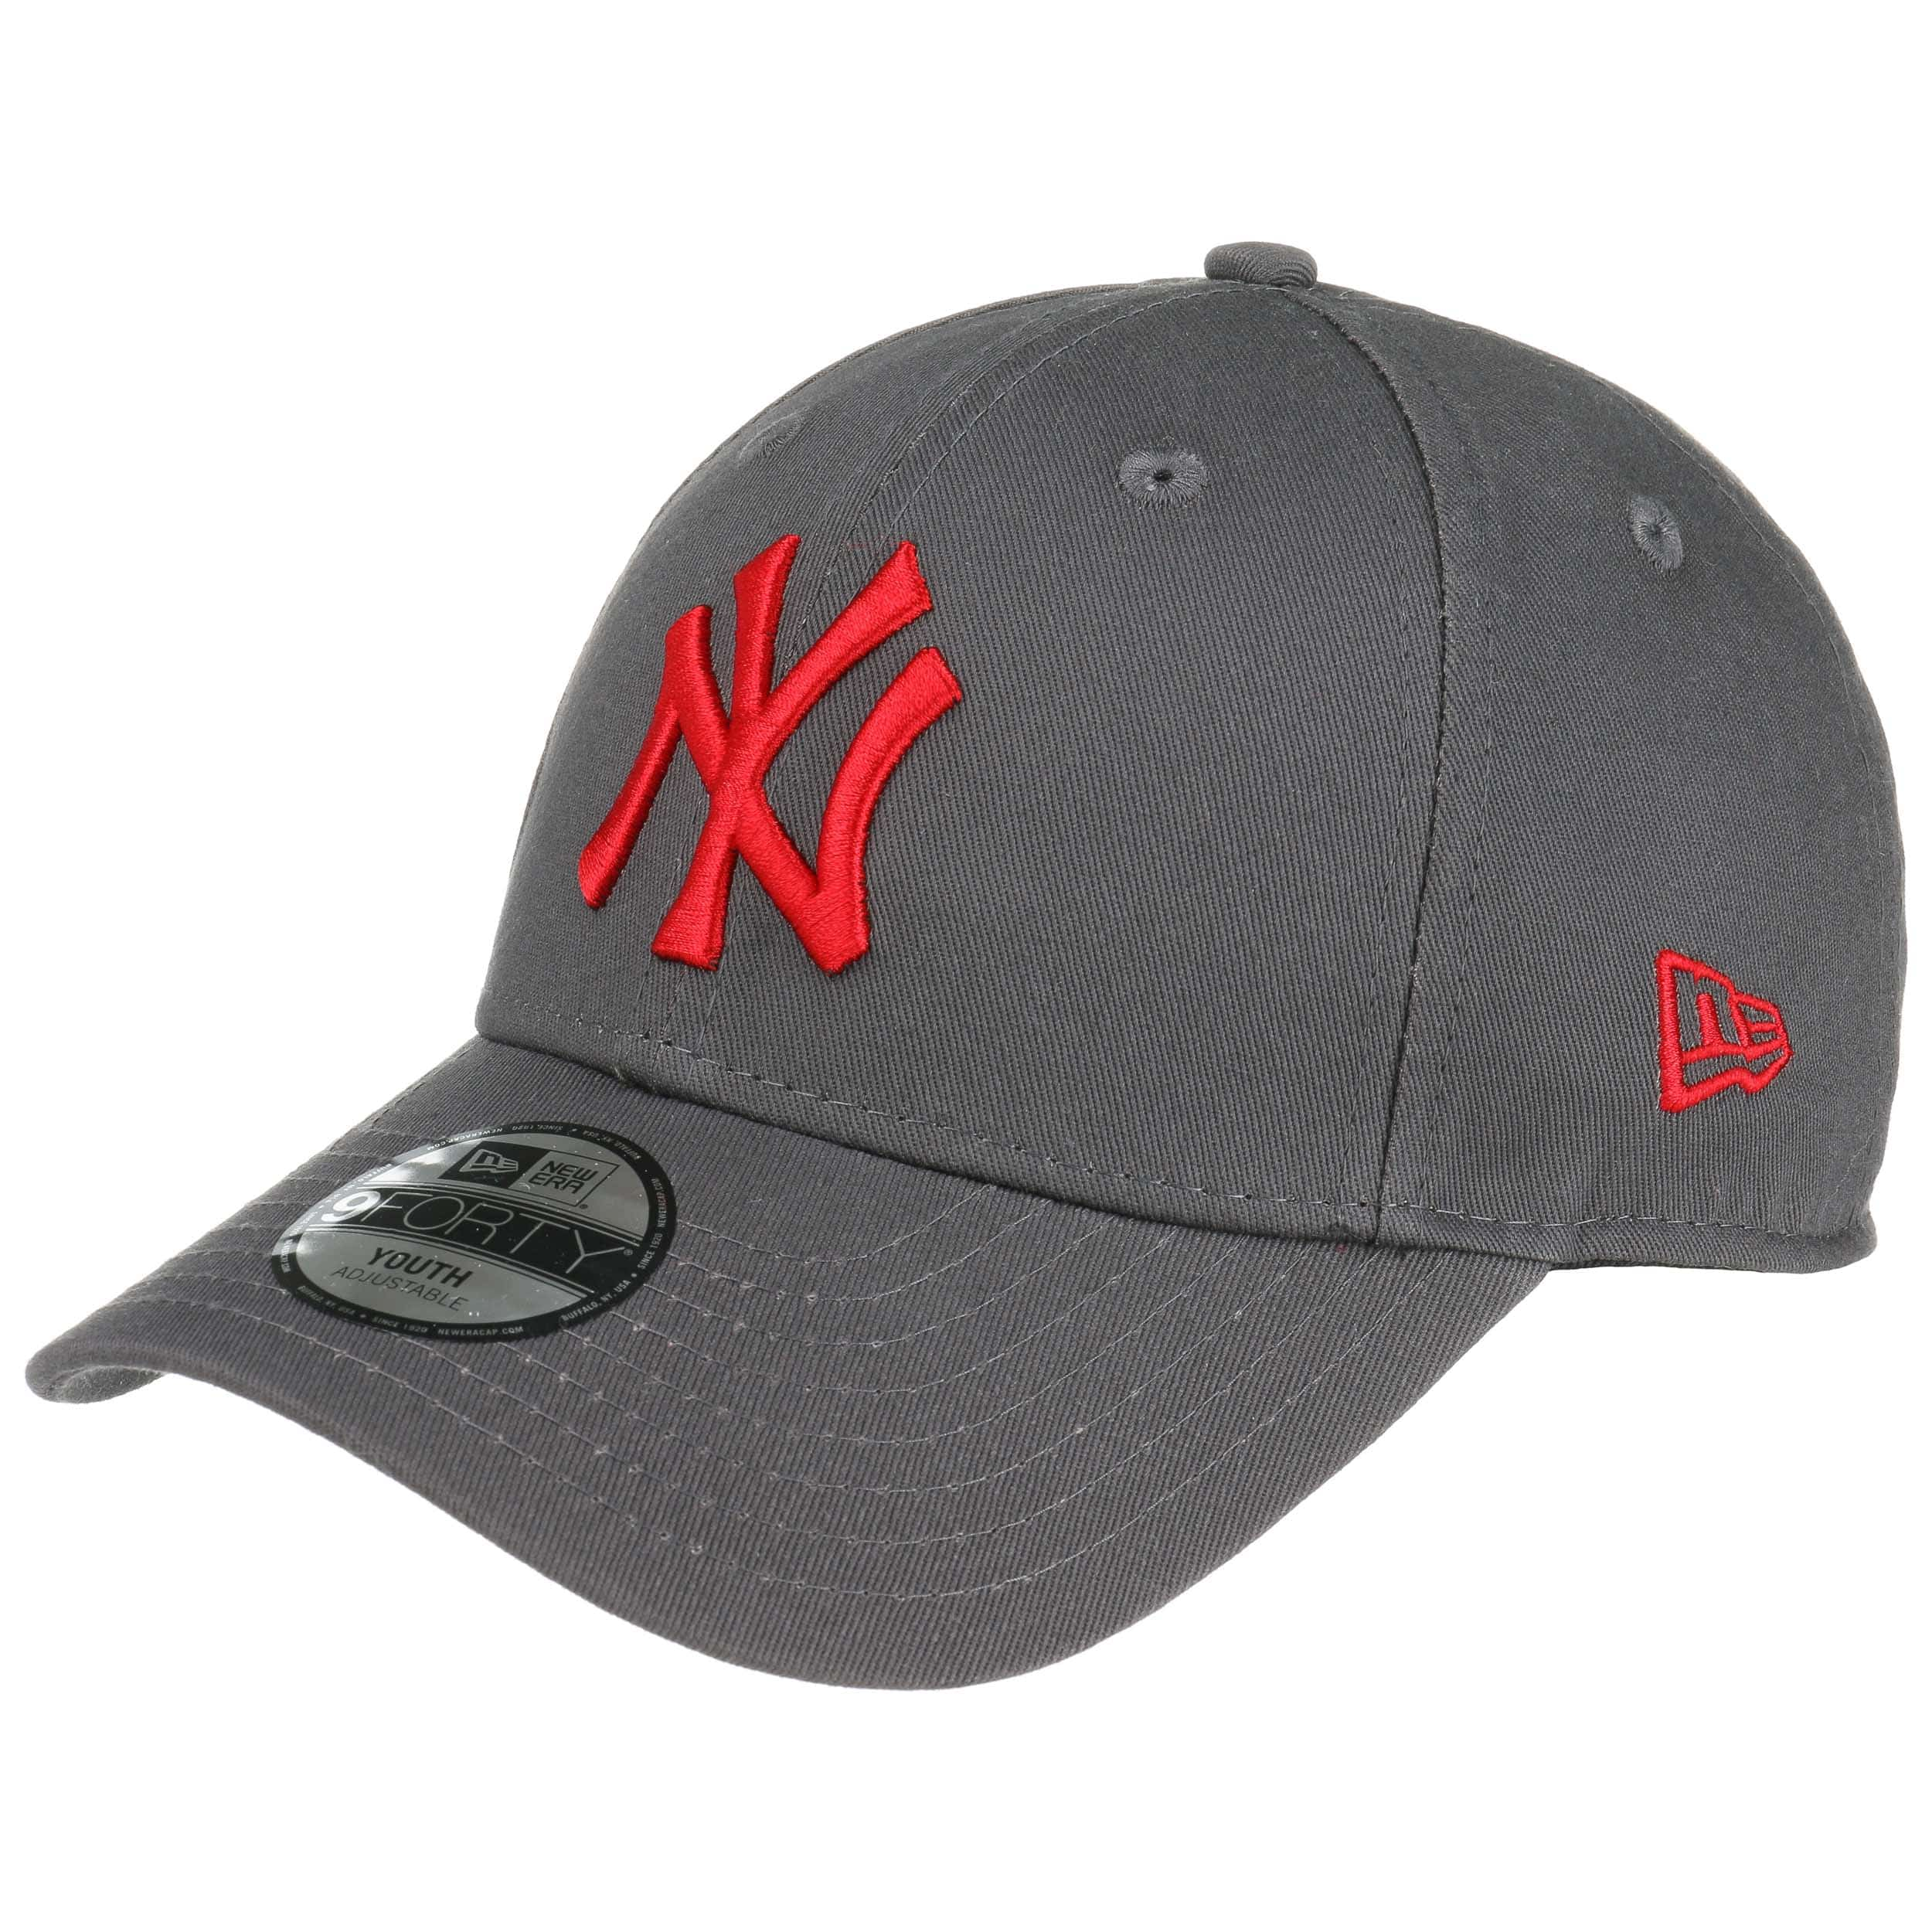 aaa3839247bc4 ... germany 9forty junior ny yankees cap by new era 5 00d80 ca3d4